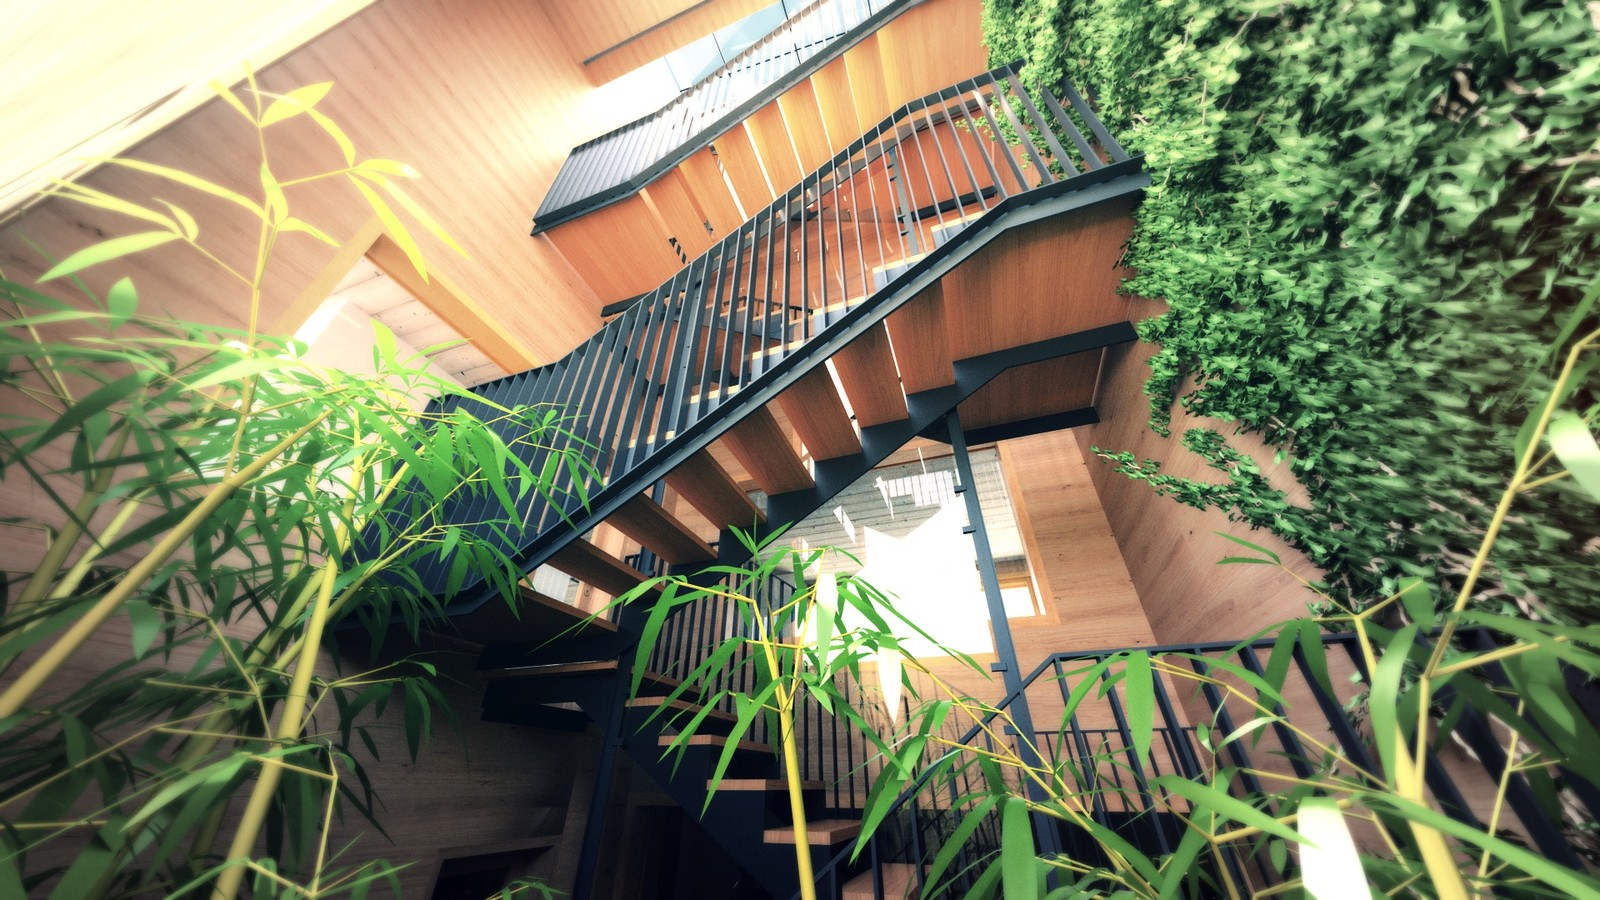 27 A1309-Villas Portier 3d STAIRCASE-GARAGE-Staircase 1rst floor 01 B Post 02  KP webpage of project: http://www.kemppro.com/KP_3D_communication_3_Villas_Veyrier.html